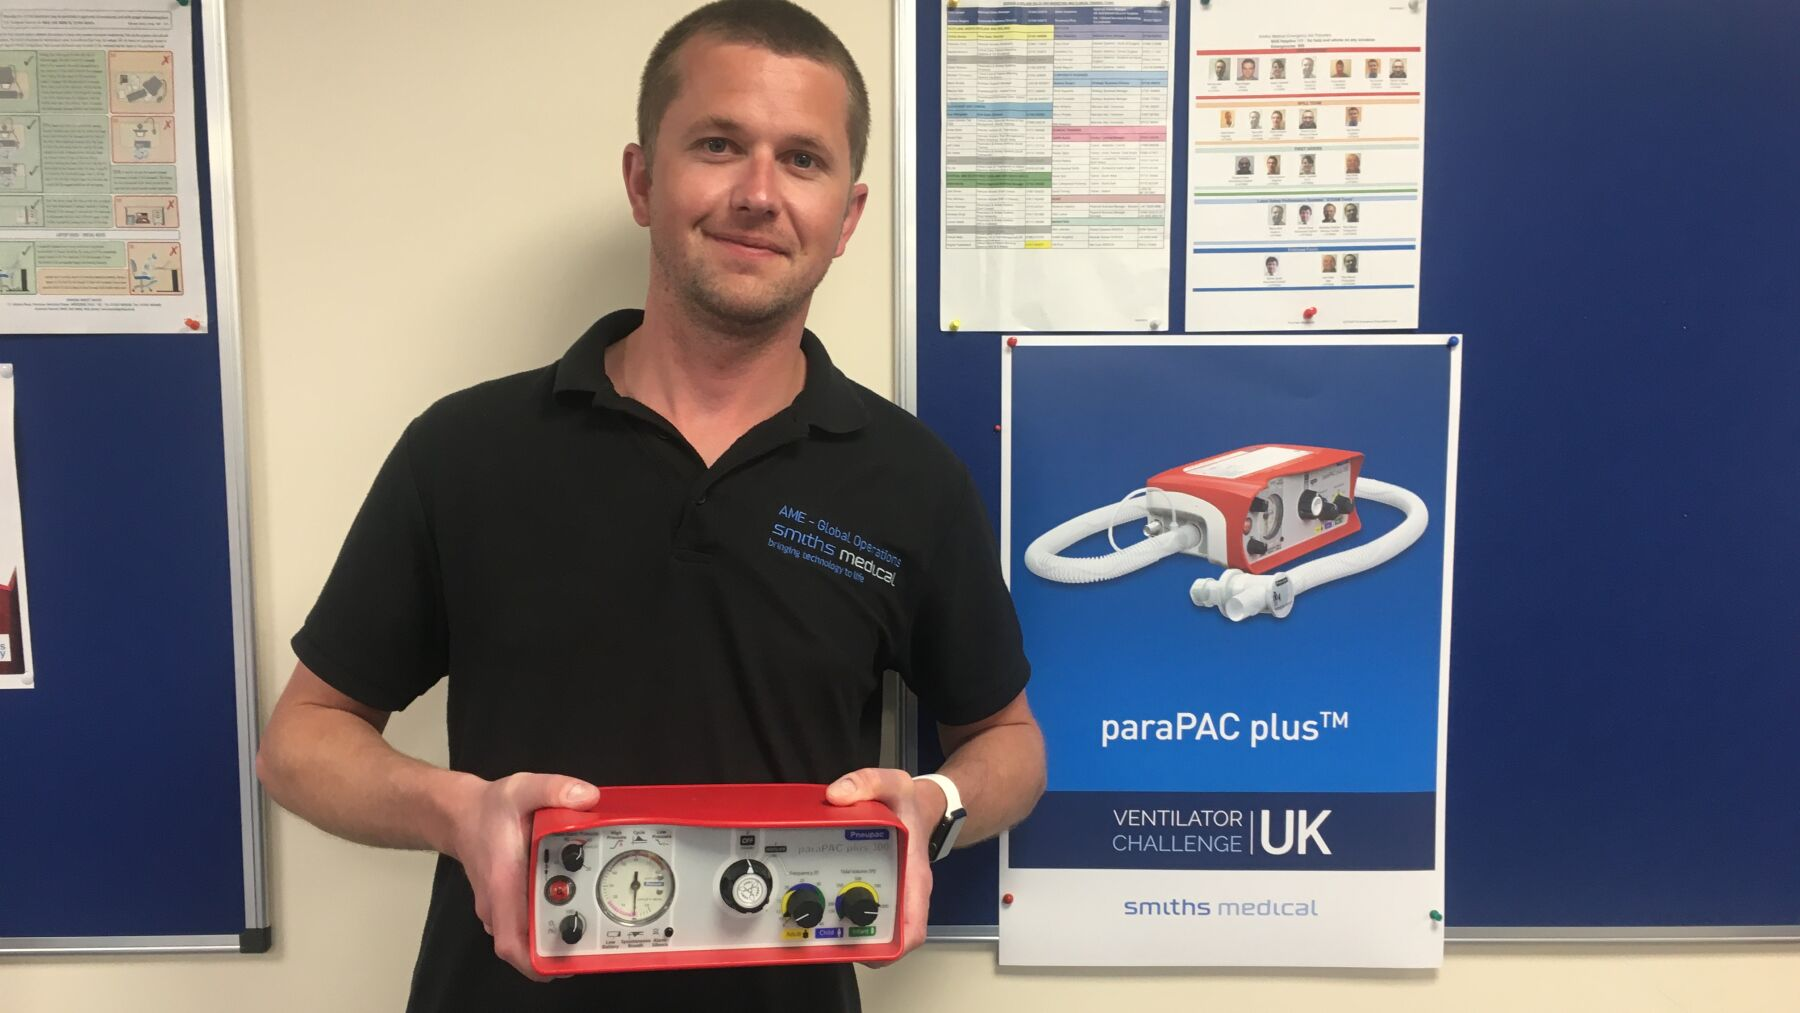 Jamie with one of the ventilators he helped to create